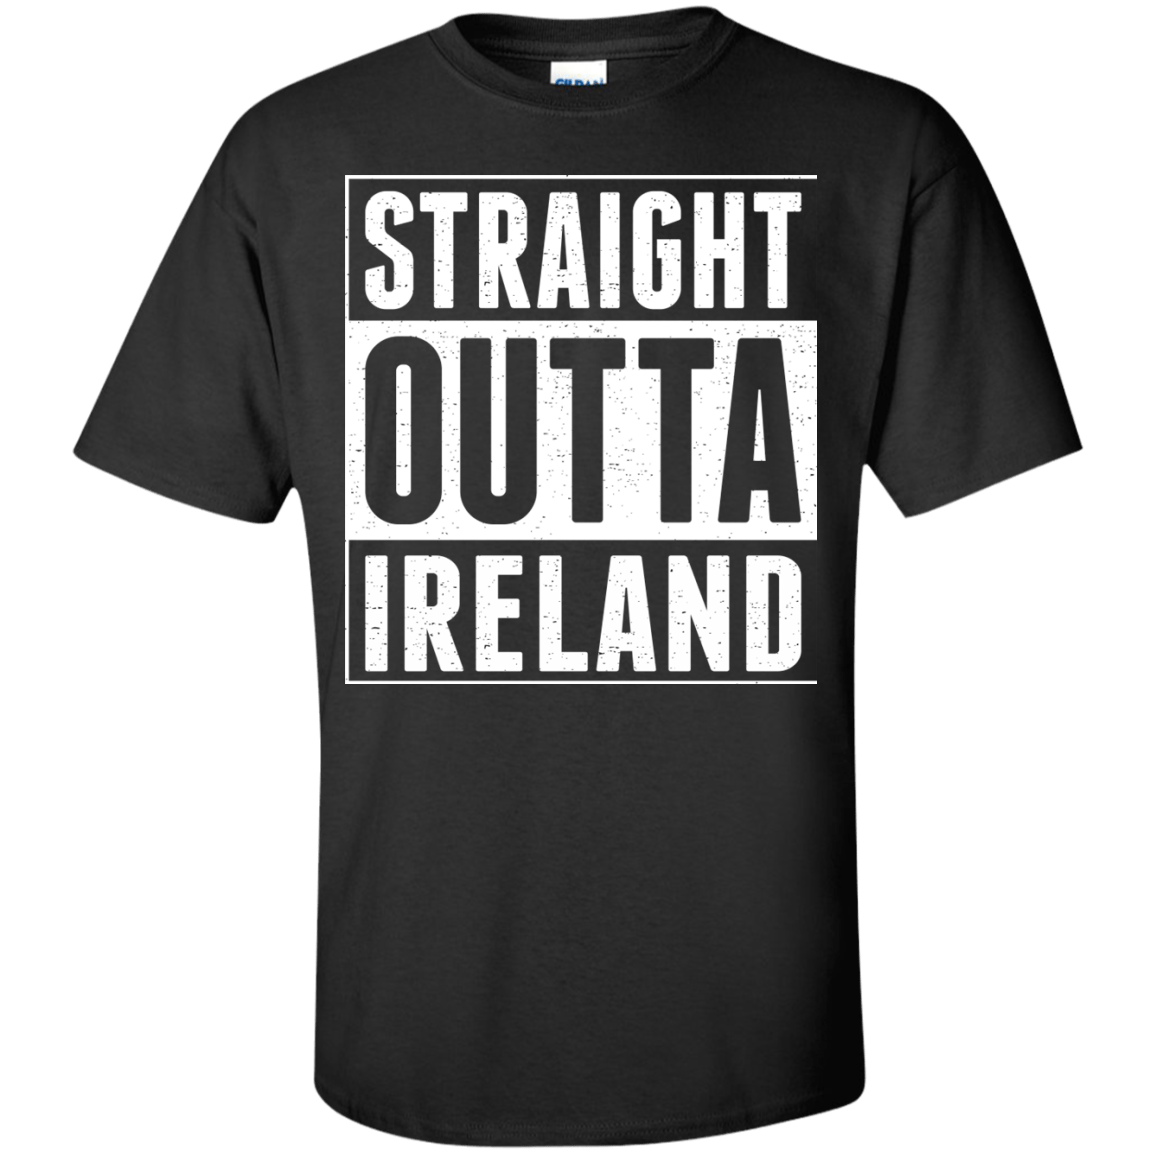 Straight Outta Ireland. Product Description We use high quality and Eco-friendly material and Inks! We promise that our Prints will not Fade, Crack or Peel in the wash.The Ink will last As Long As the Garment. We do not use cheap quality Shirts like other Sellers, our Shirts are of high Quality and super Soft, perfect fit for summer or winter dress.Orders are printed and shipped between 3-5 days.We use USPS/UPS to ship the order.You can expect your package to arrive...